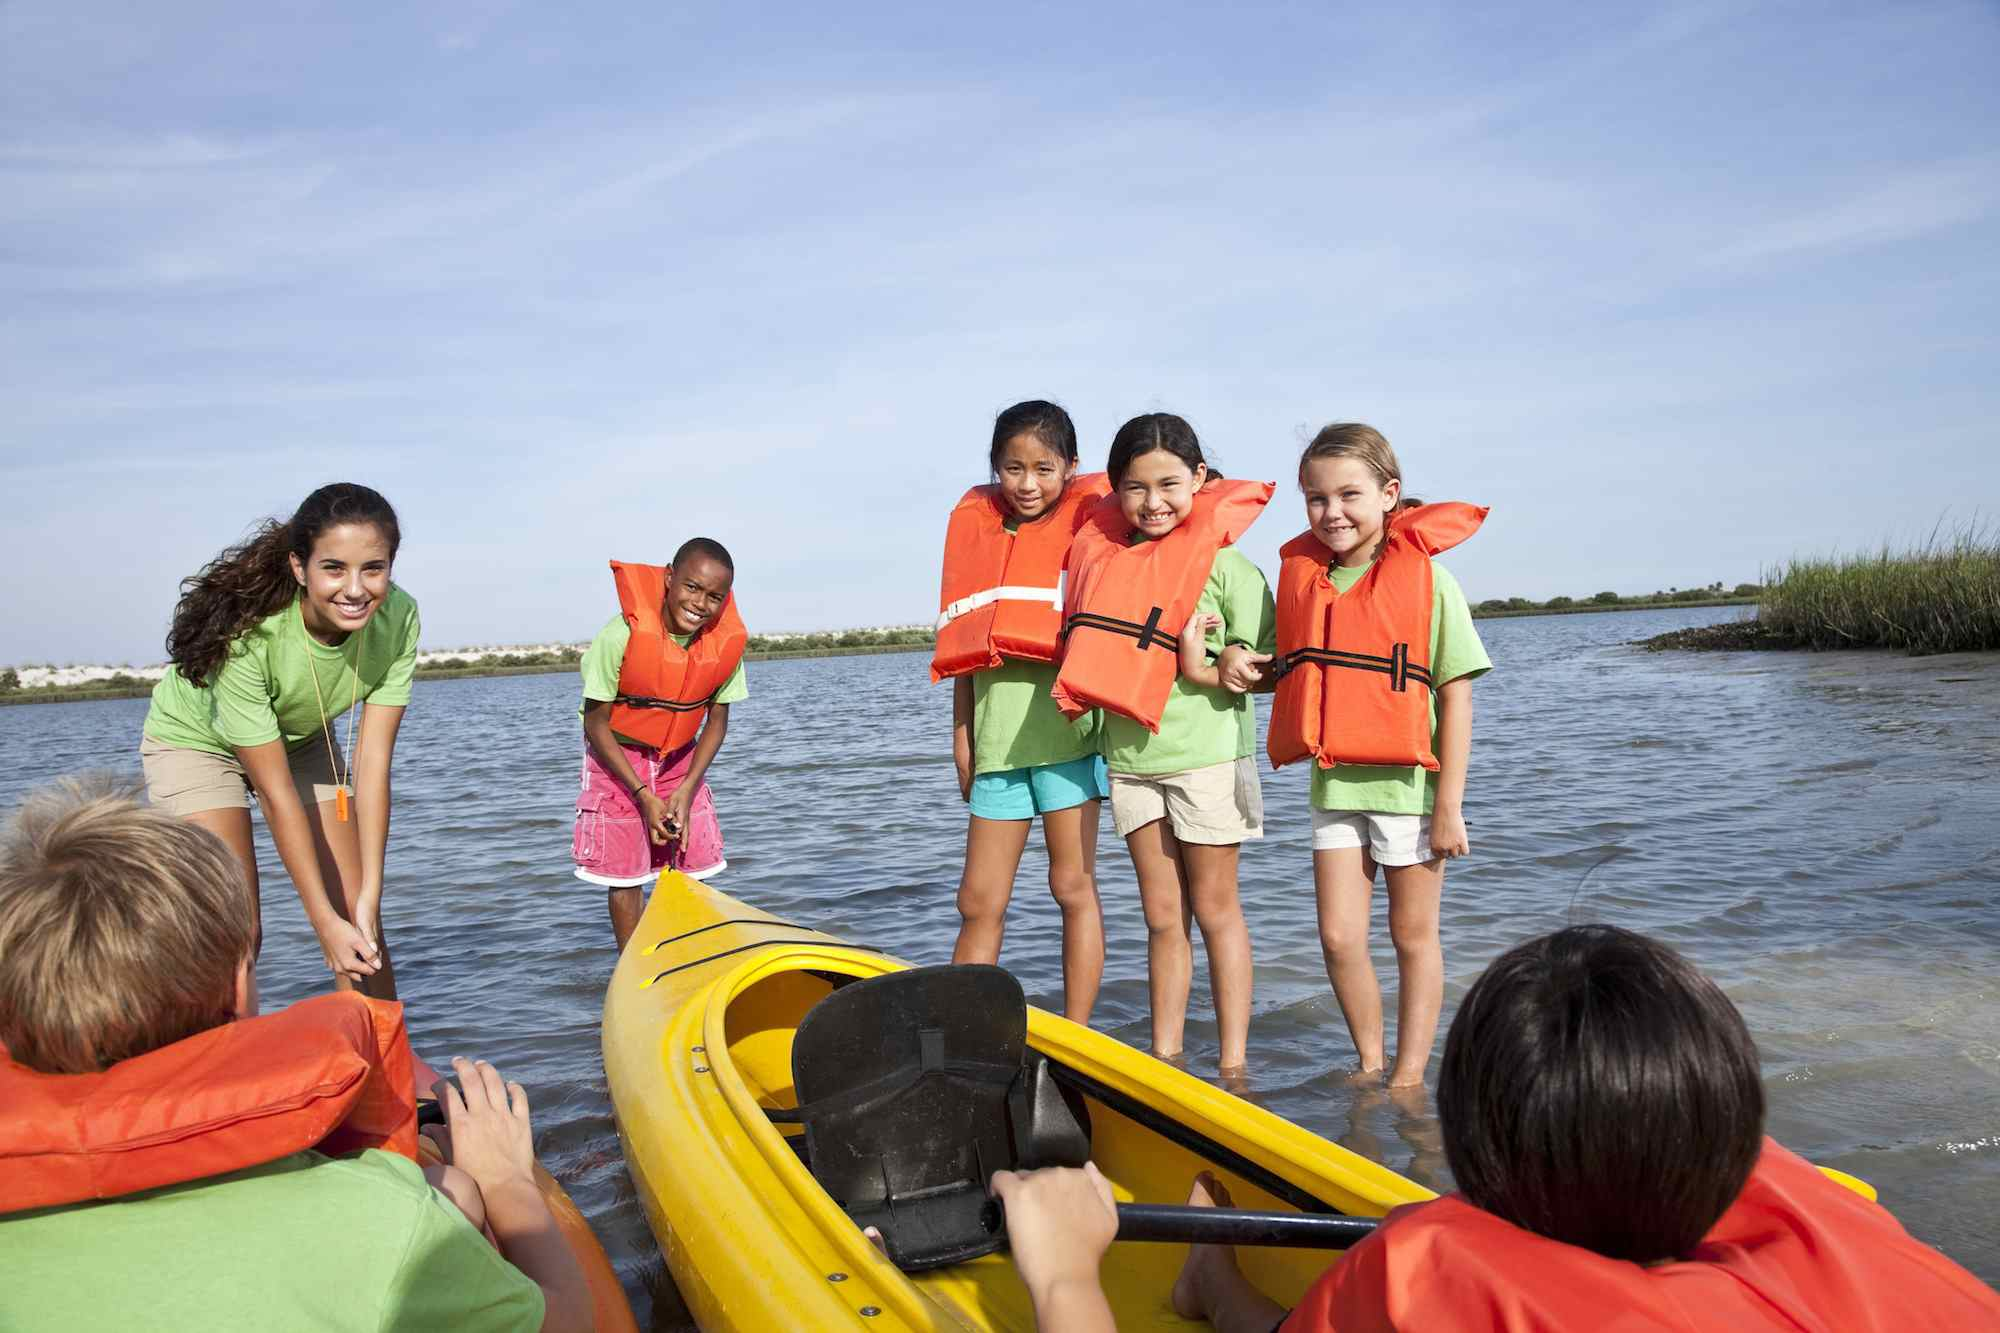 Summer camp counselor and children with kayaks